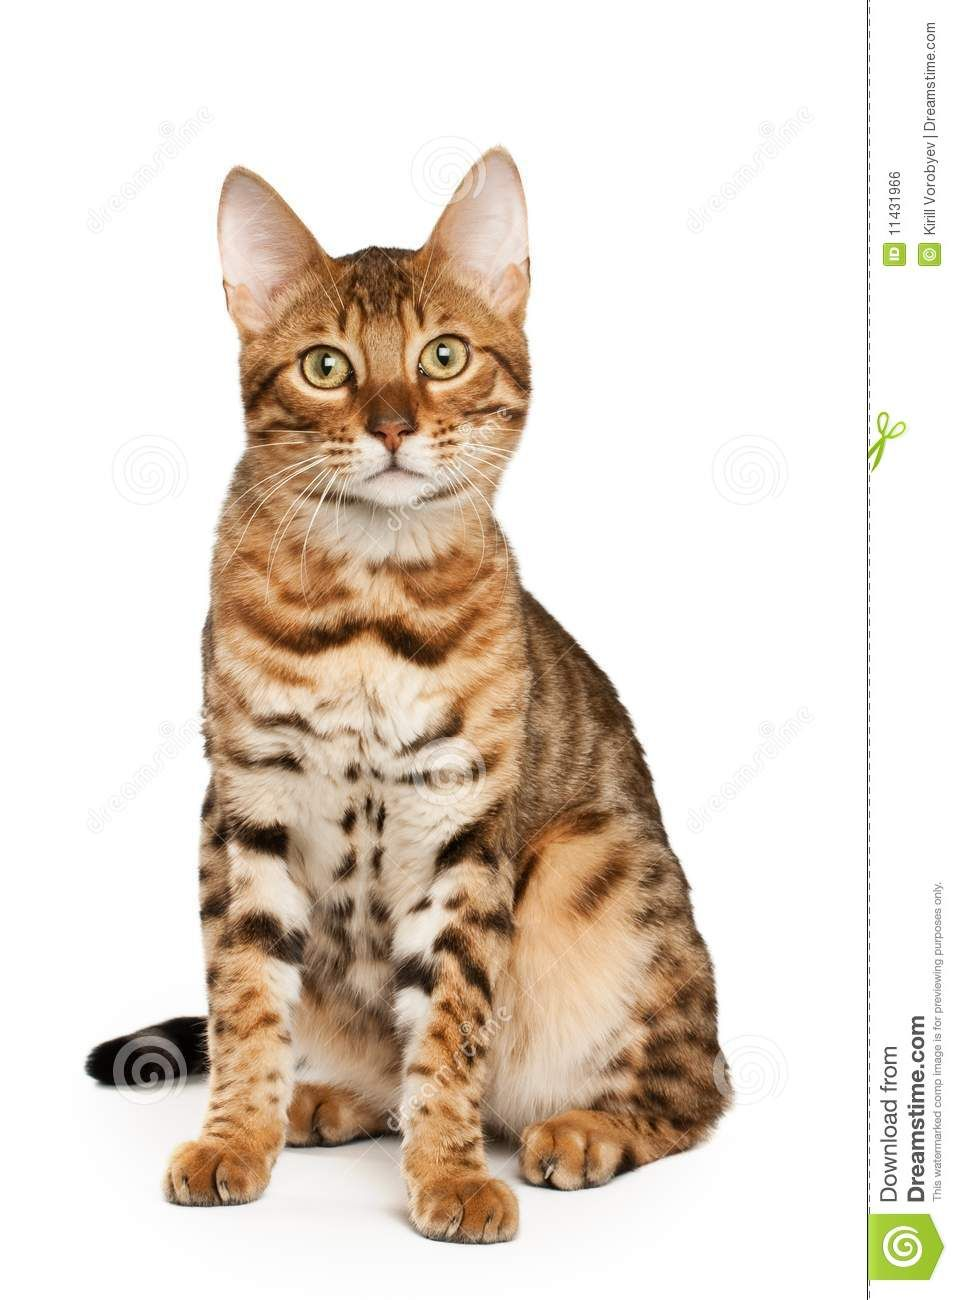 Bengal Cat Royalty Free Stock Image - Image: 11431966 #catlovers - Know more at - Catsincare.com!